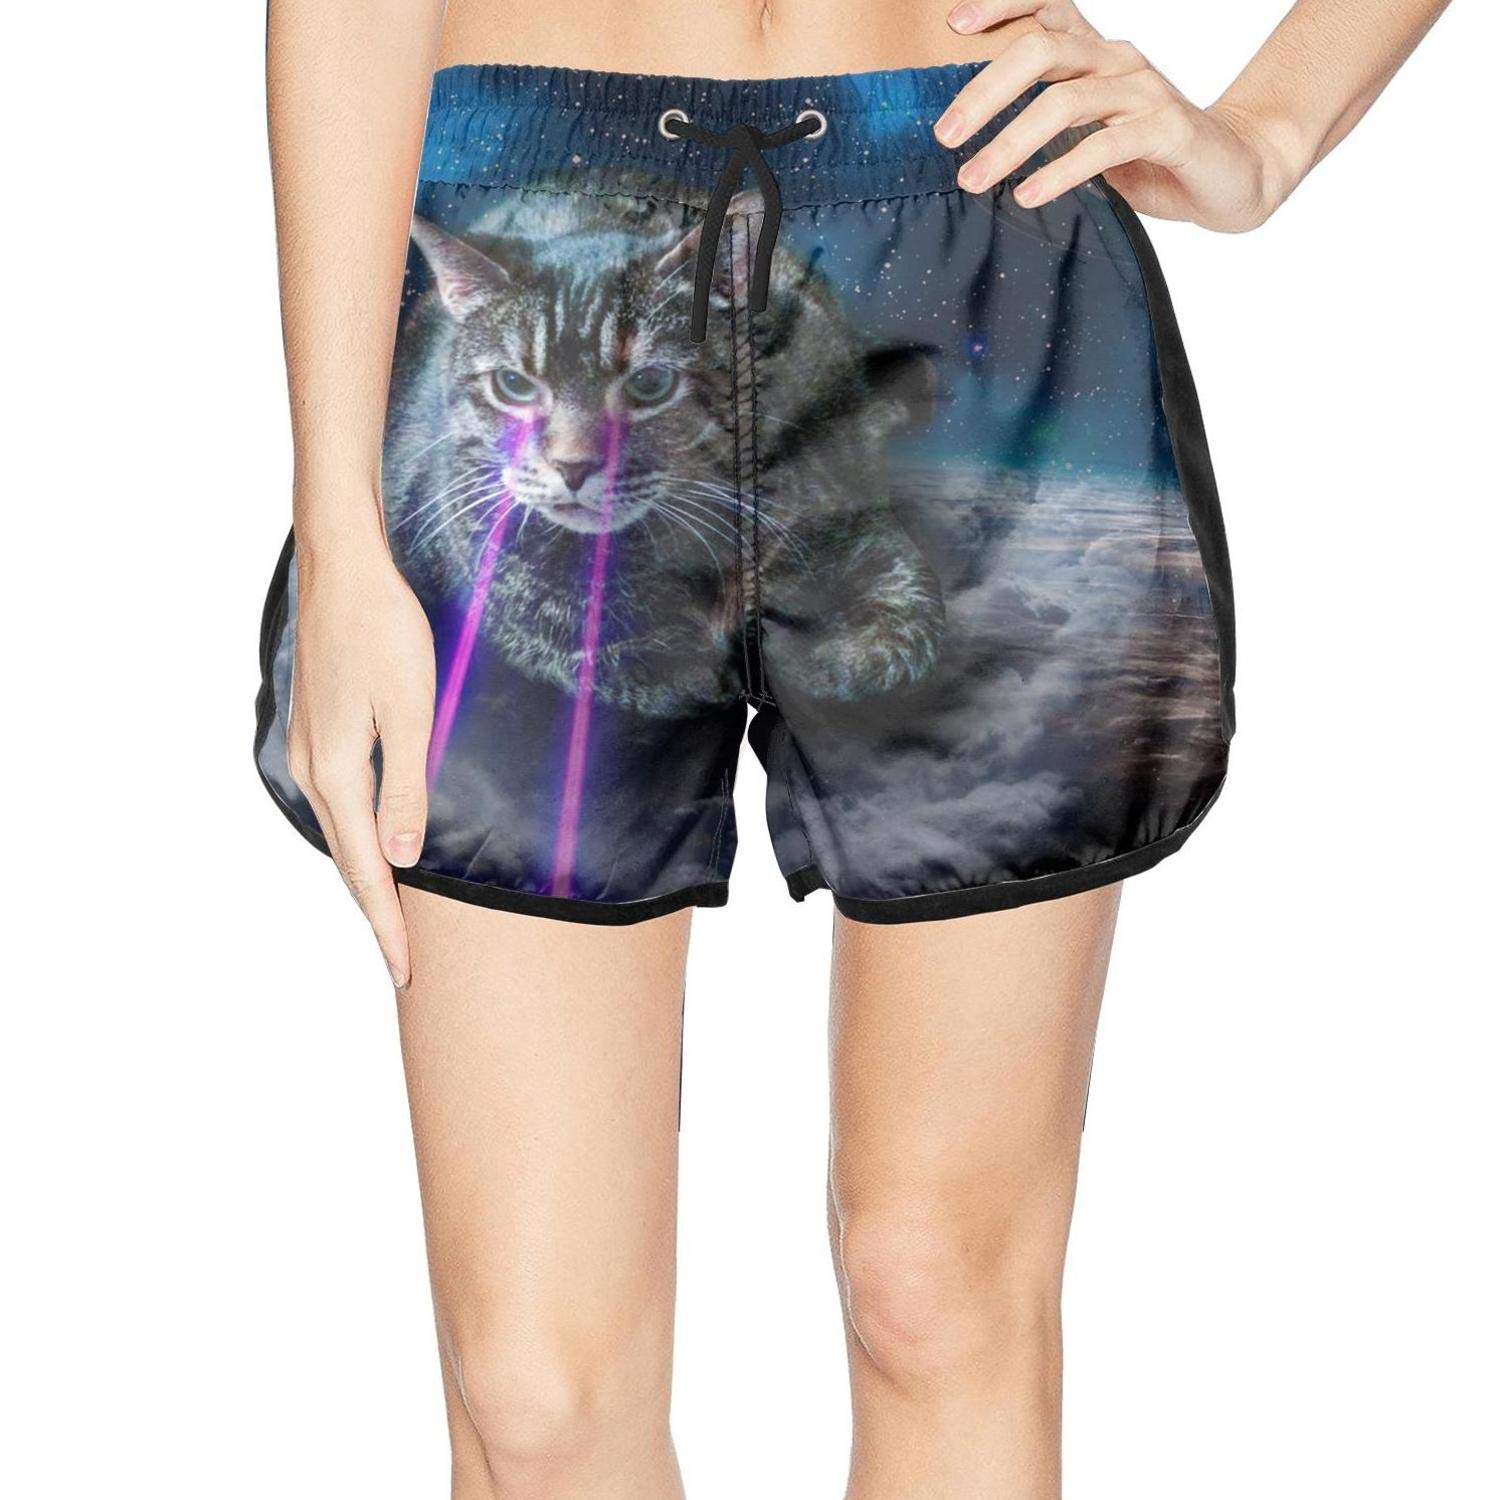 XULANG Young Women Laser cat Space Swim Trunks Watersports Beach wear Casual Sport Boardshorts